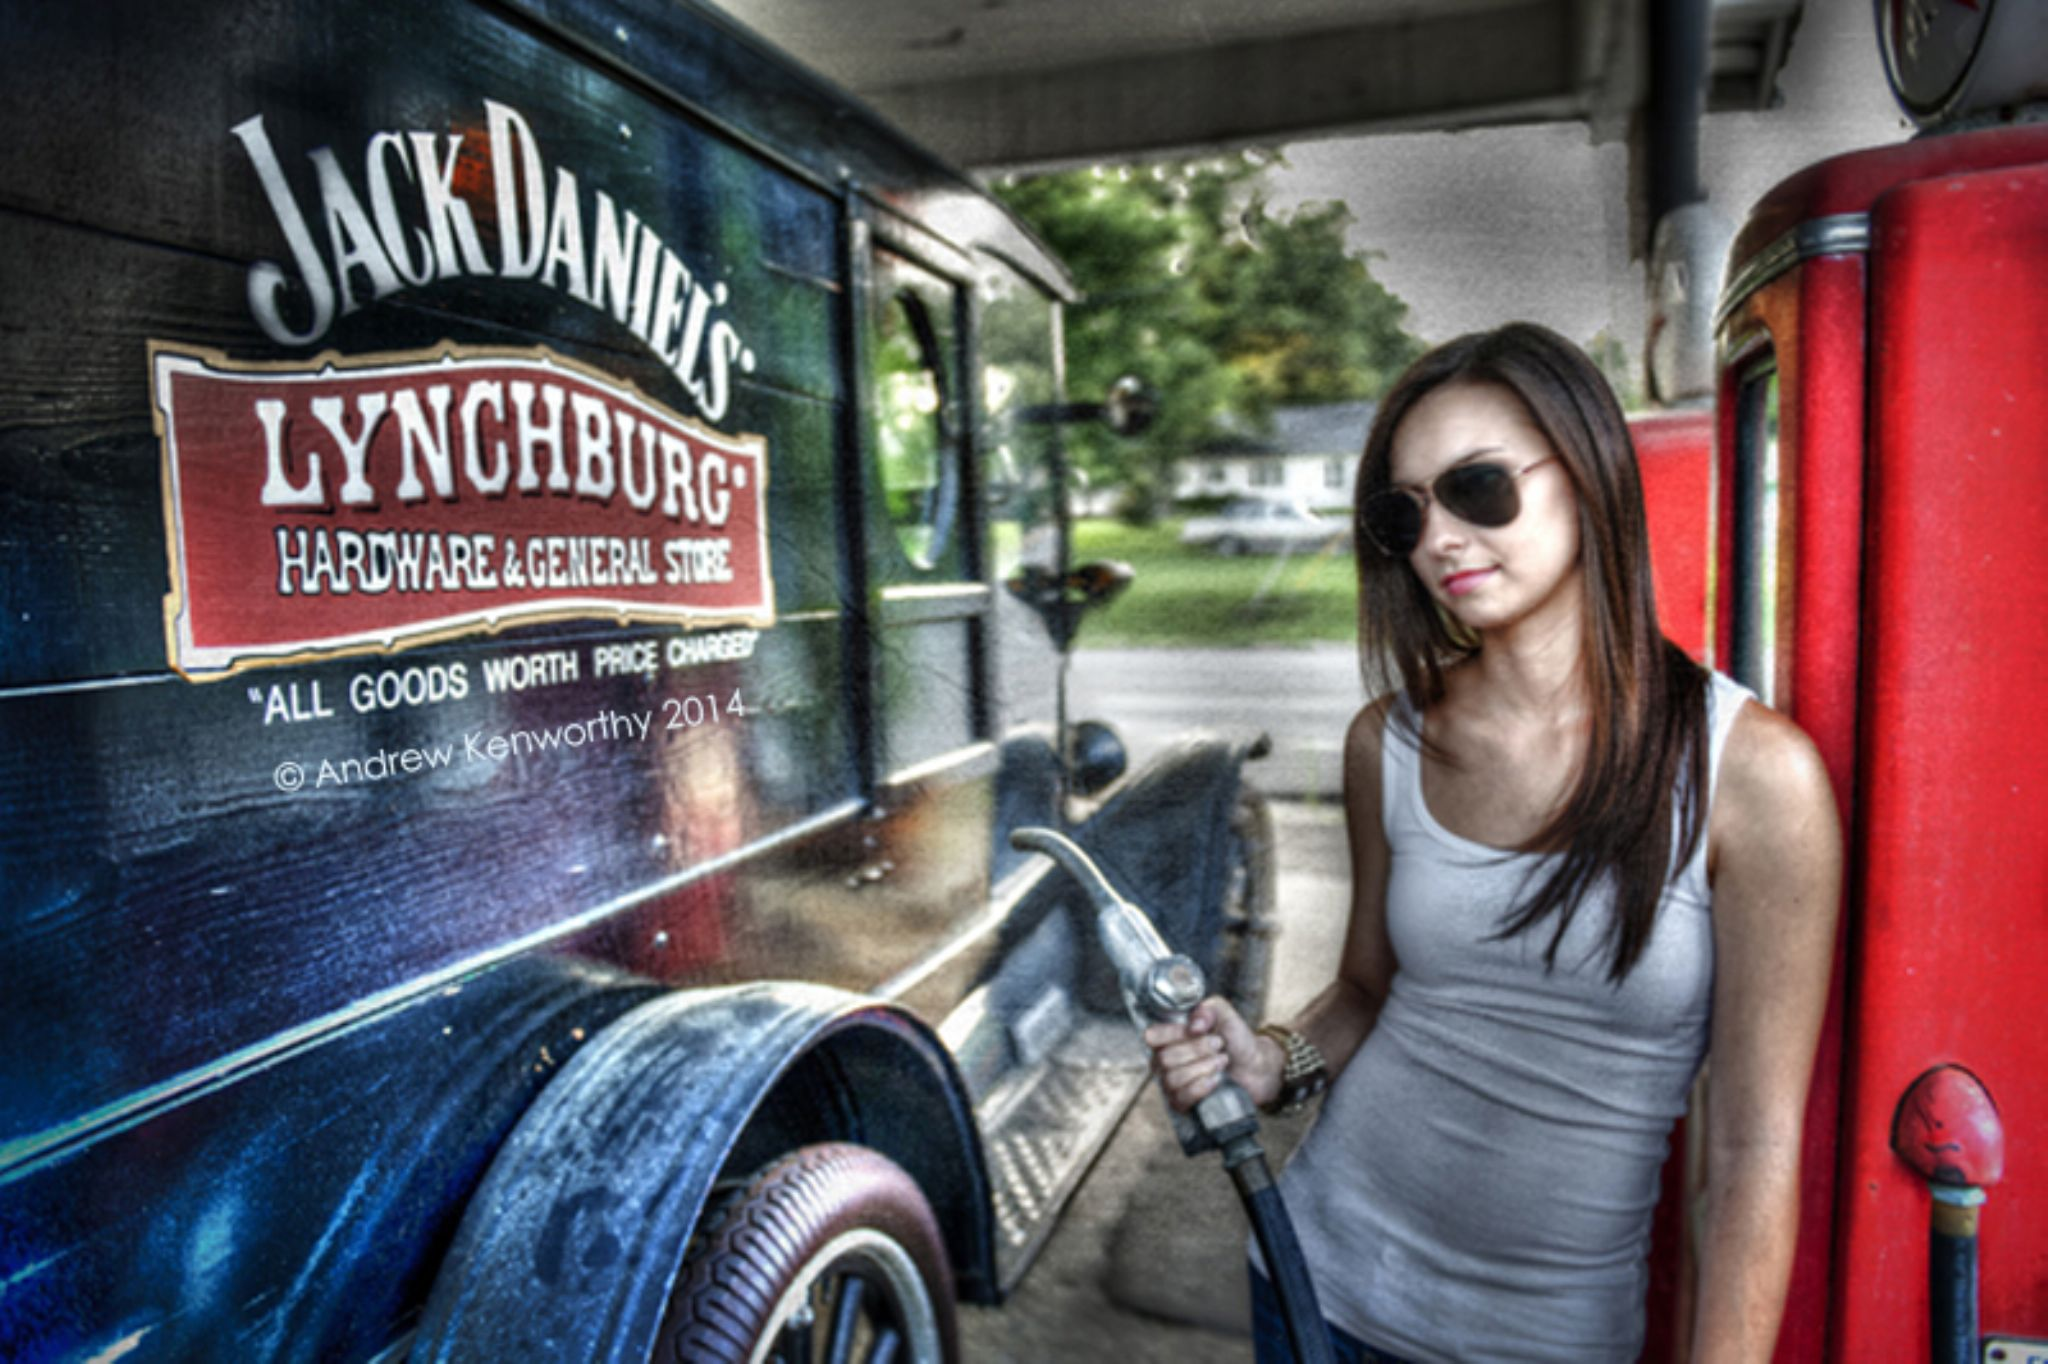 Jack Daniels by Andrew Kenworthy Photography